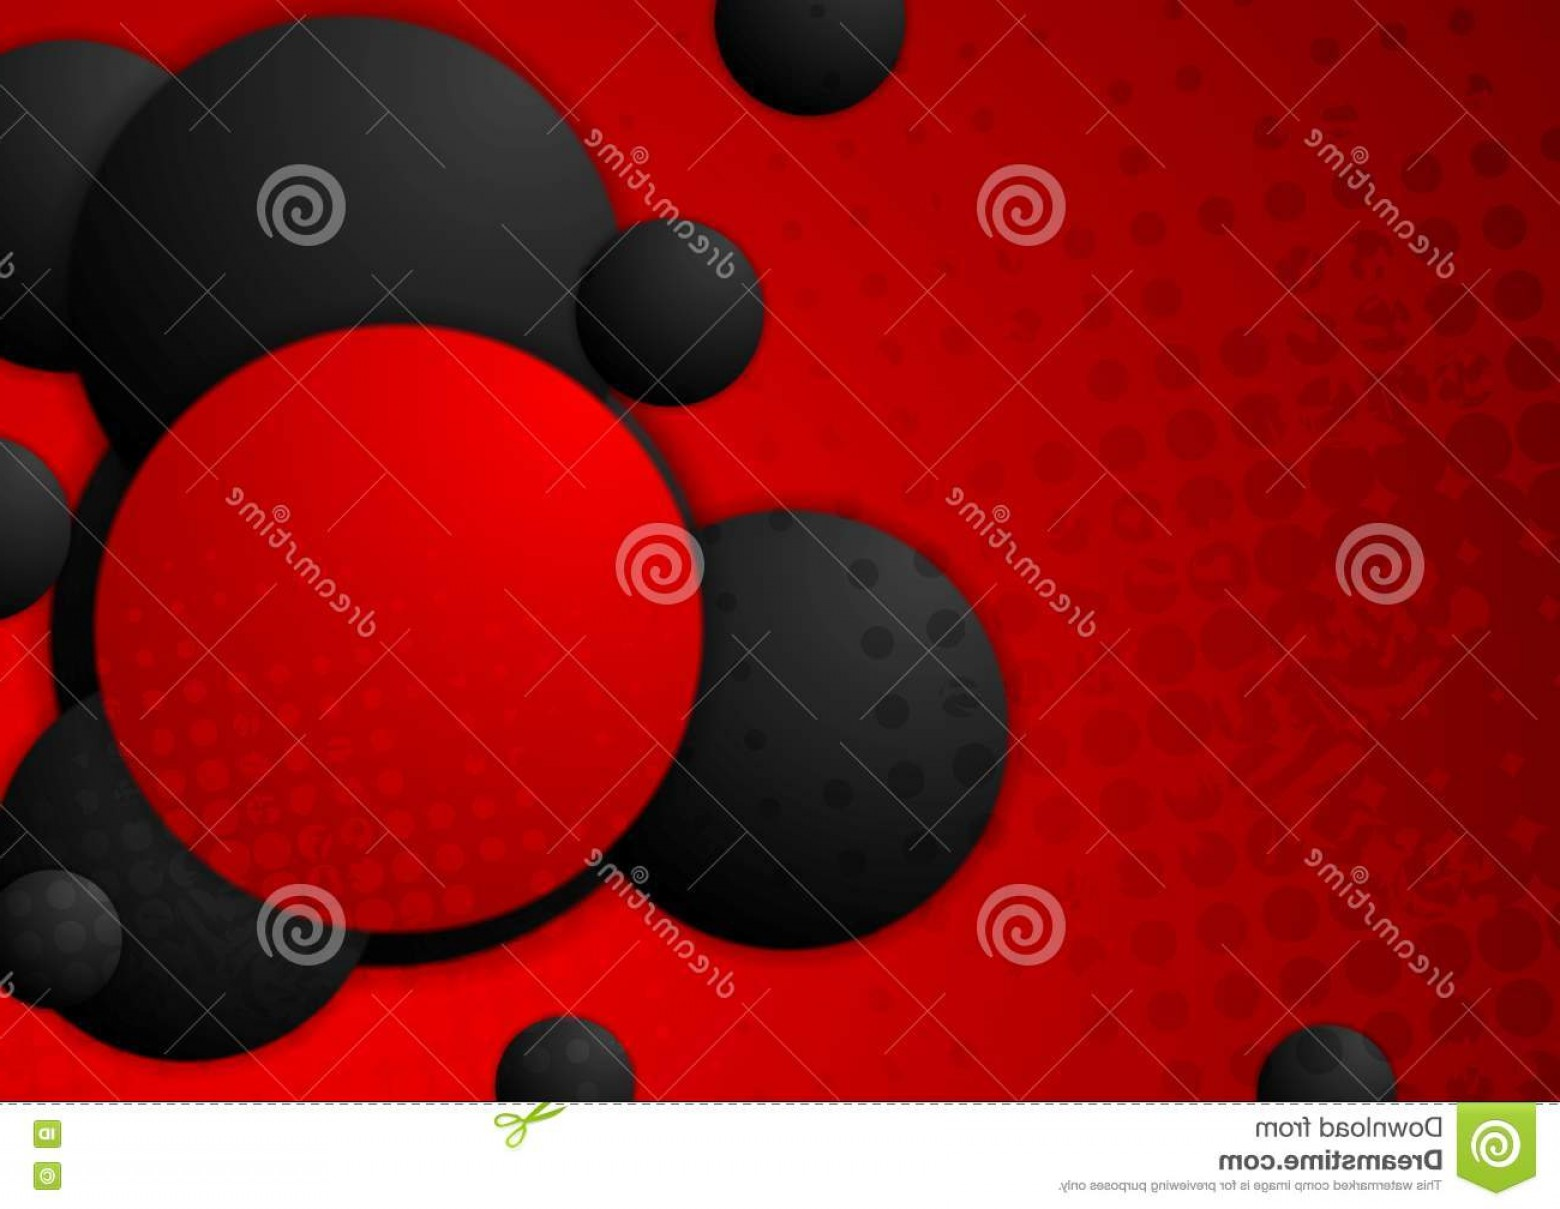 Grunge Background Vector Graphic: Stock Illustration Black Red Circles Grunge Background Vector Graphic Design Image